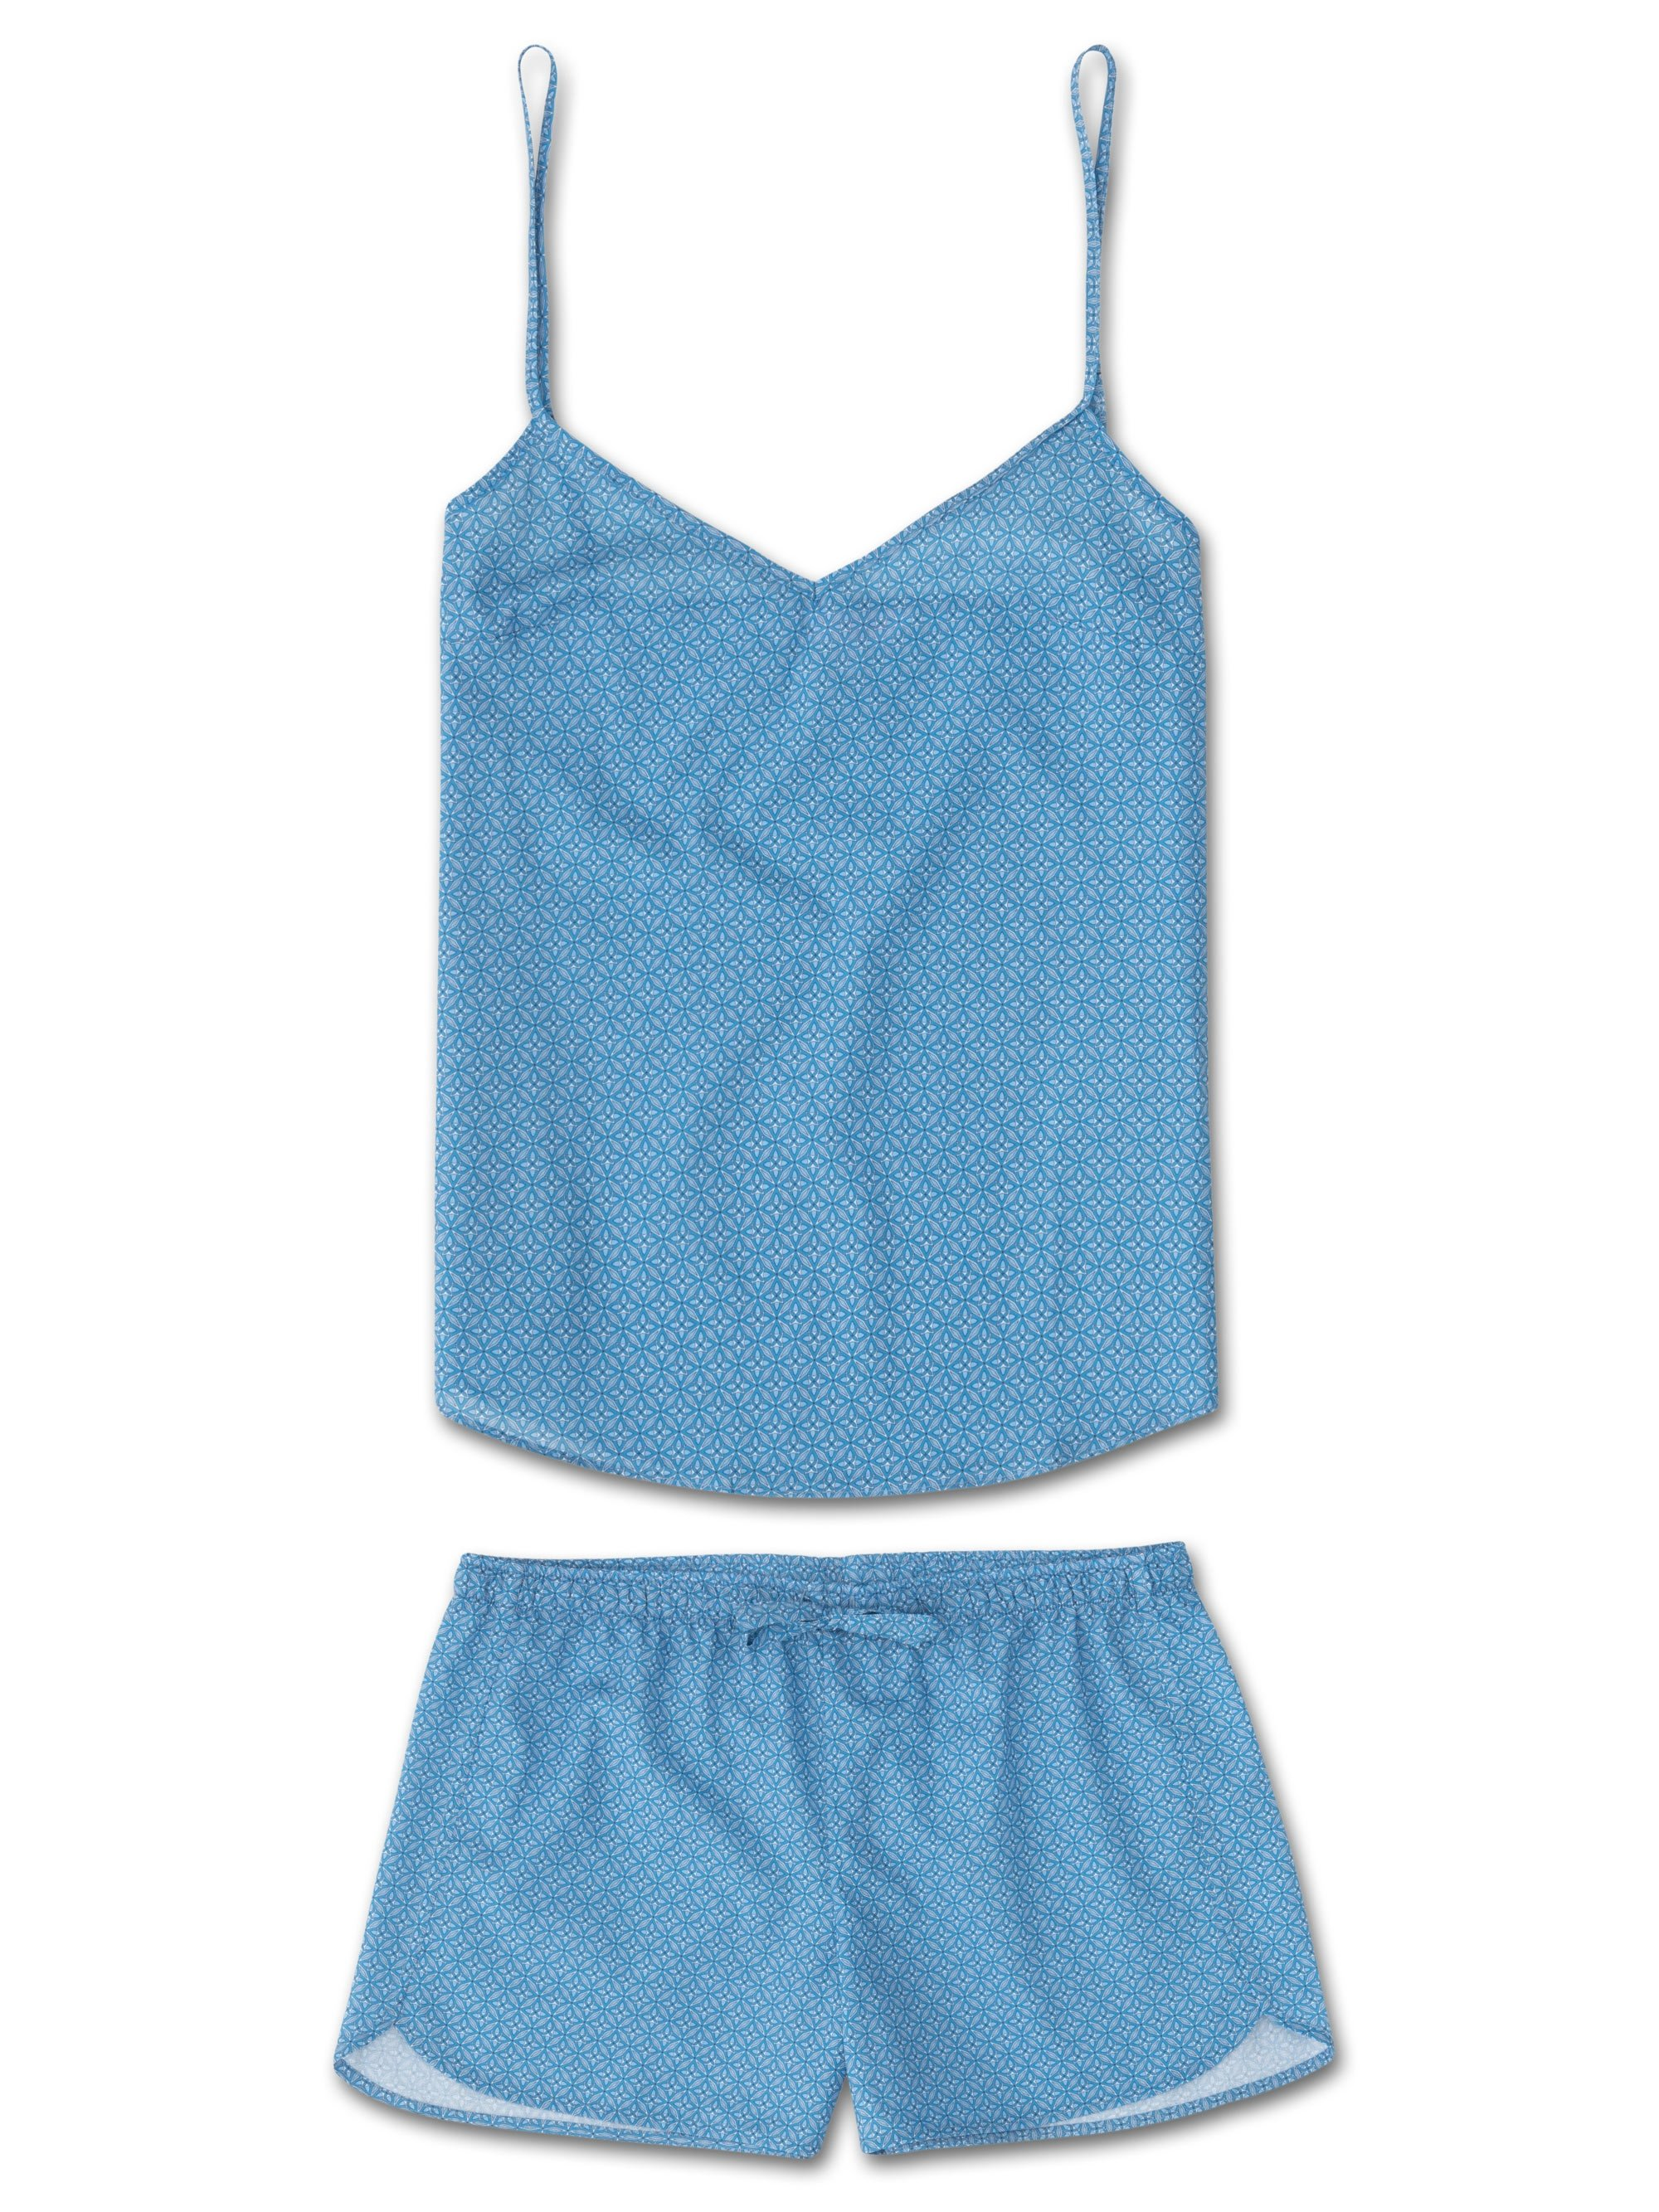 Women's Cami Short Pyjama Set Ledbury 21 Cotton Batiste Blue